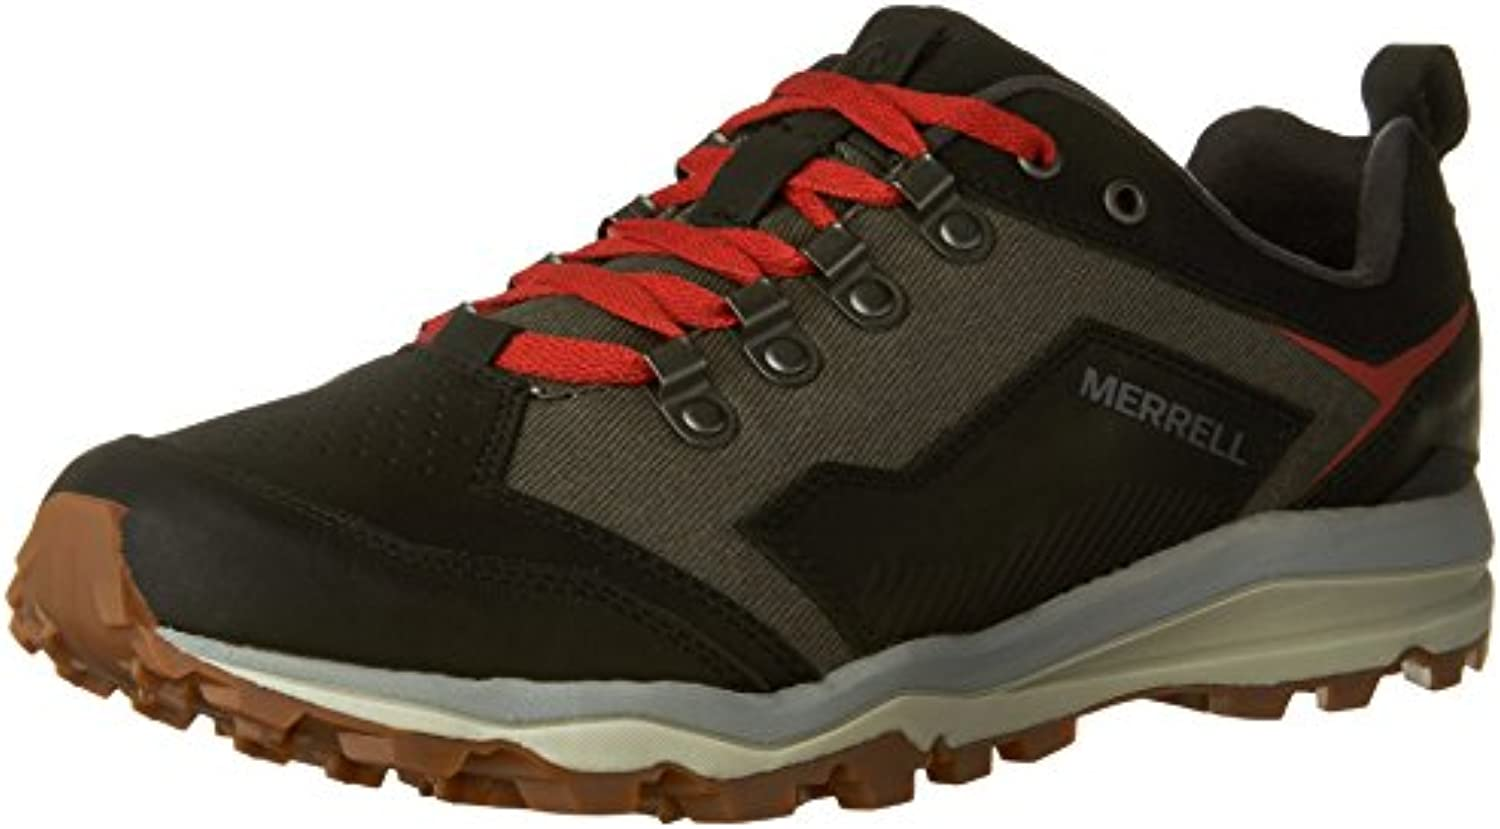 Merrell Herren All Out Crusher M Niedrige Sneaker